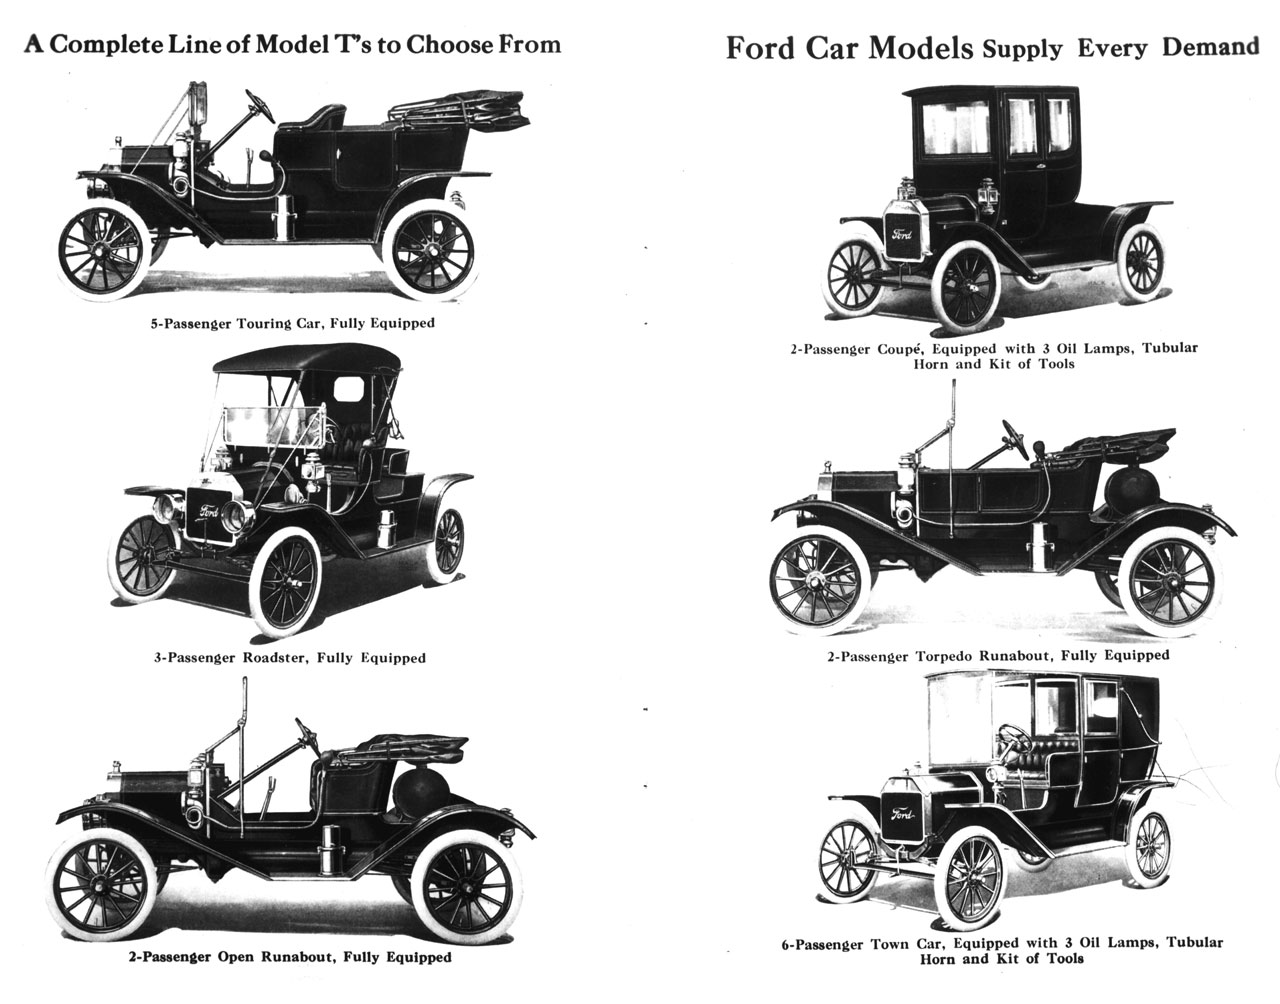 ford model t images